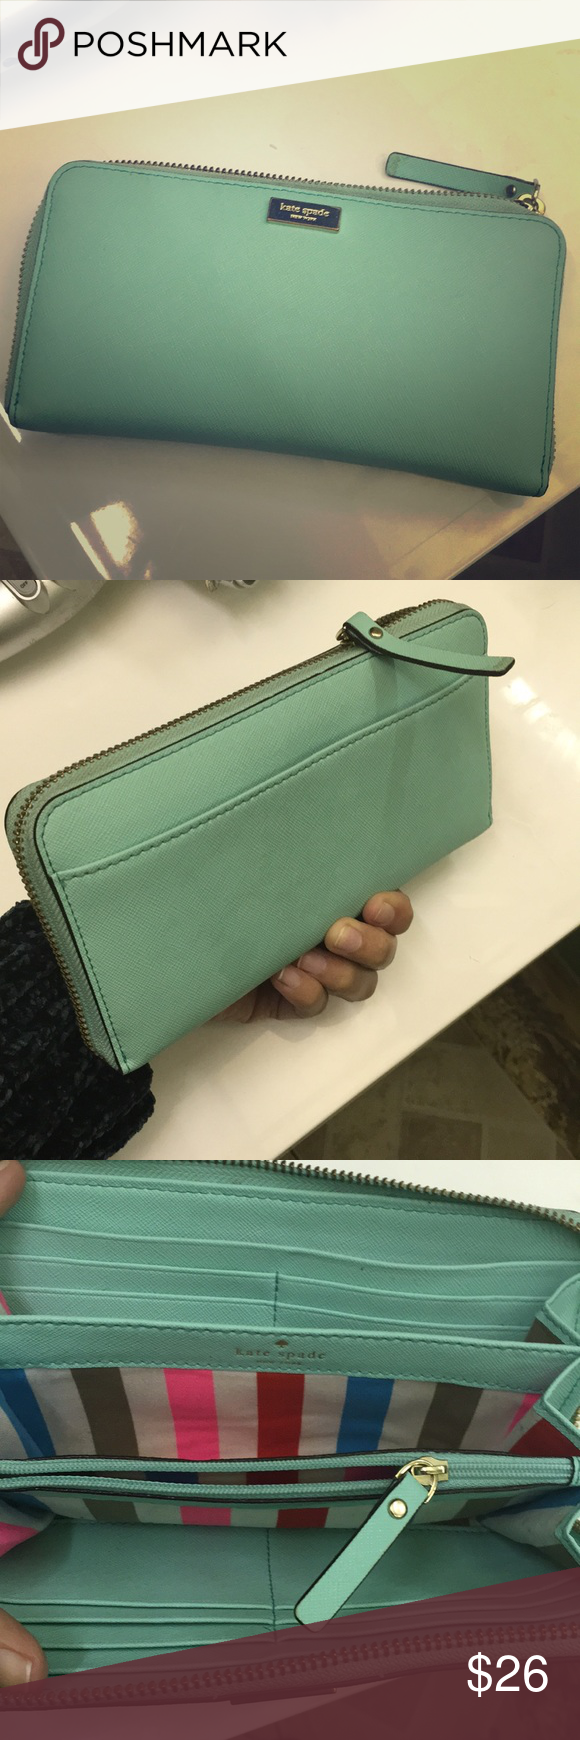 Kate spade turquoise zipped wallet. Kate spade turquoise